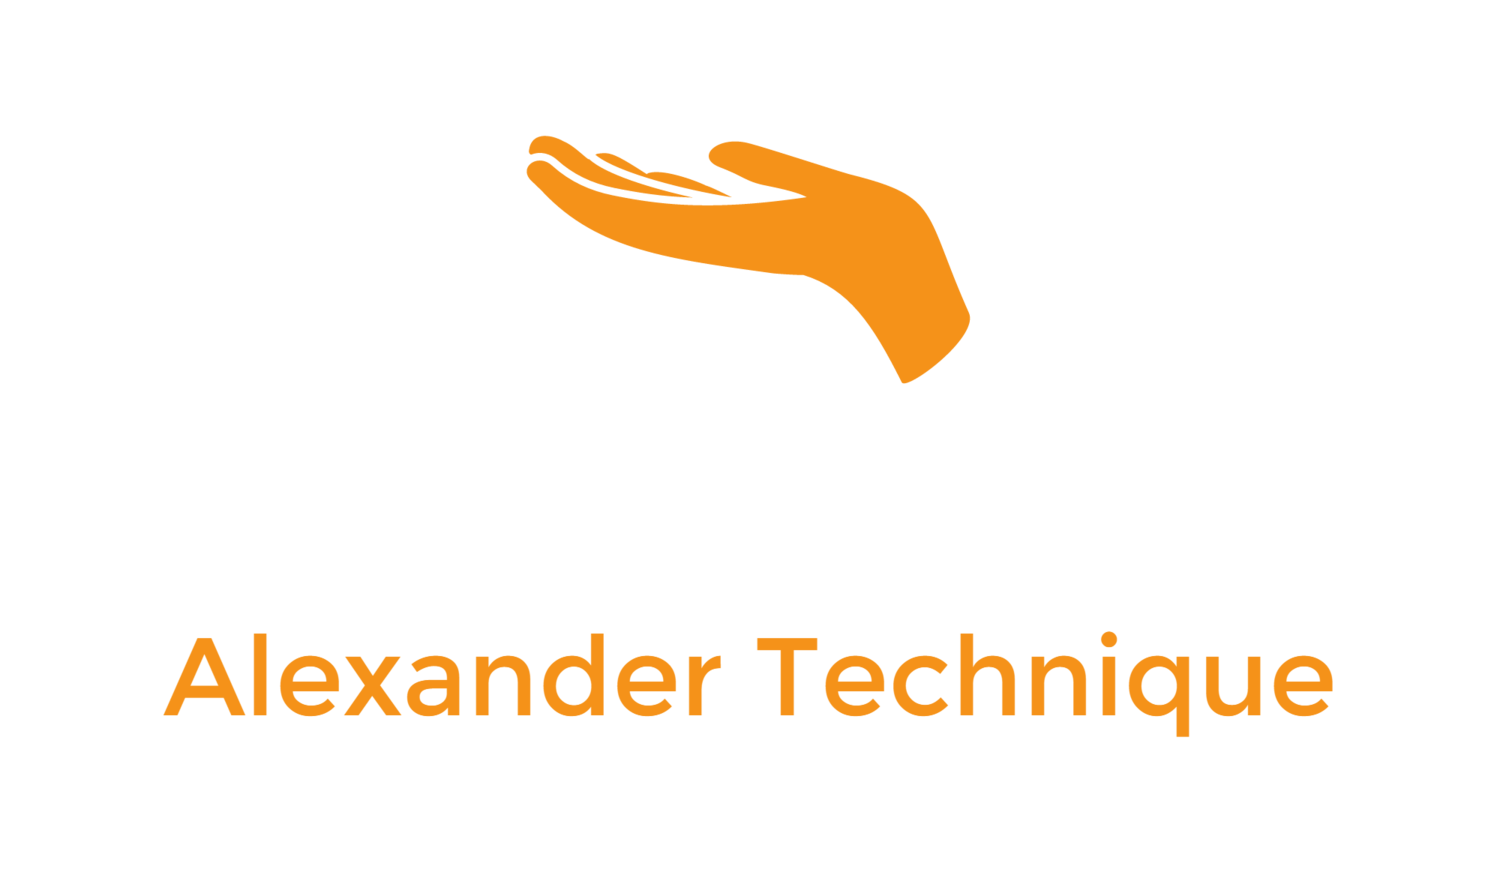 Scott Brown - Alexander Technique